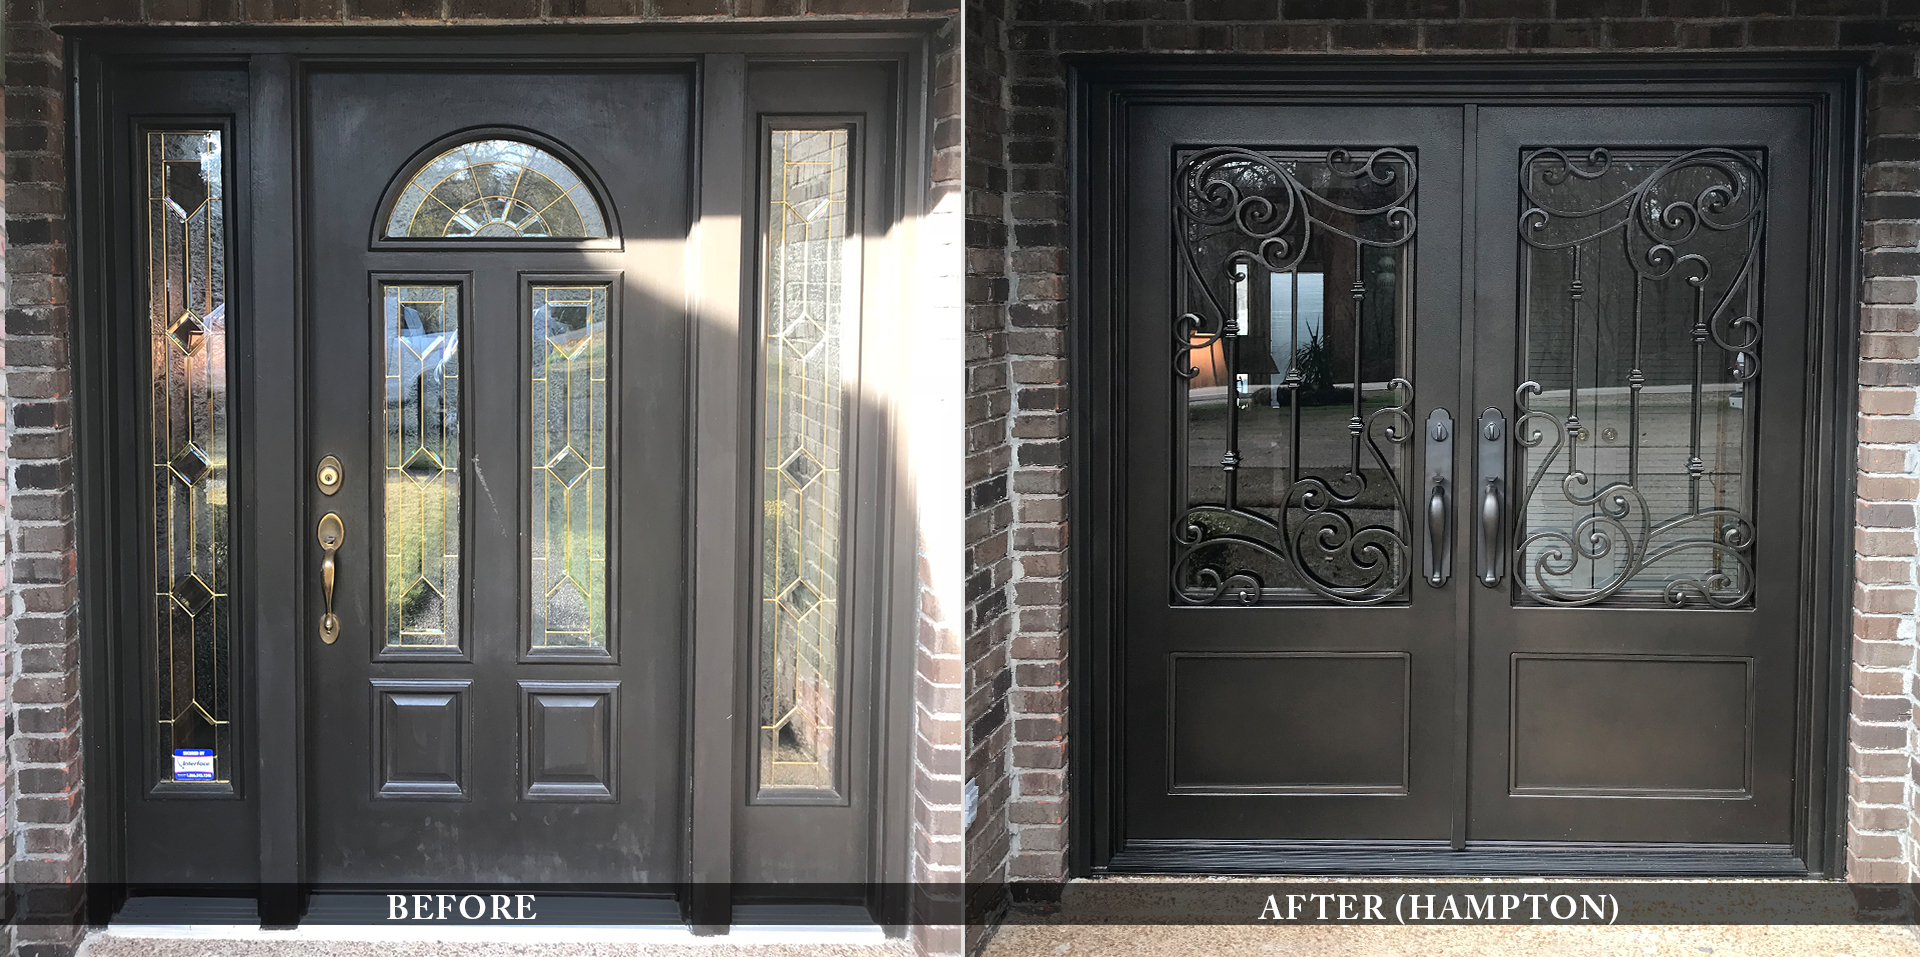 Elegant residential entry doors before and after comparison